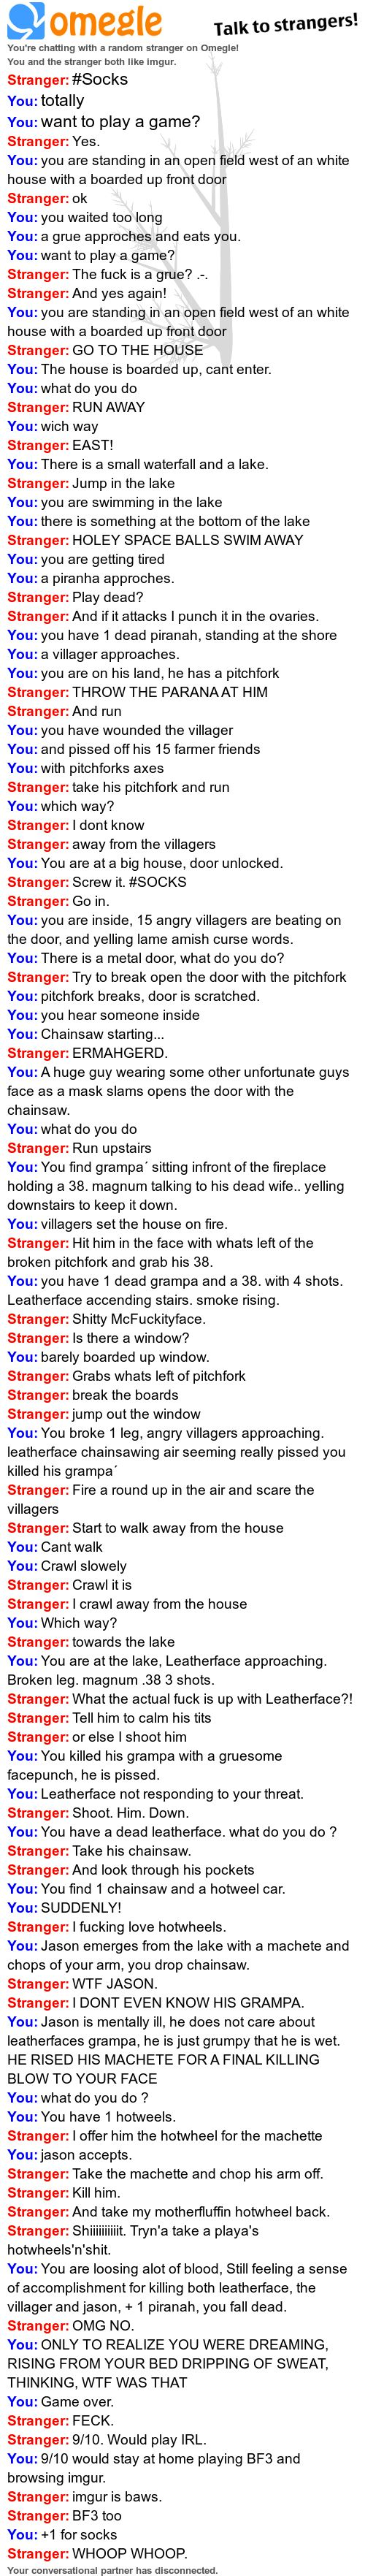 My Favorite Omegle Conversation - Imgur